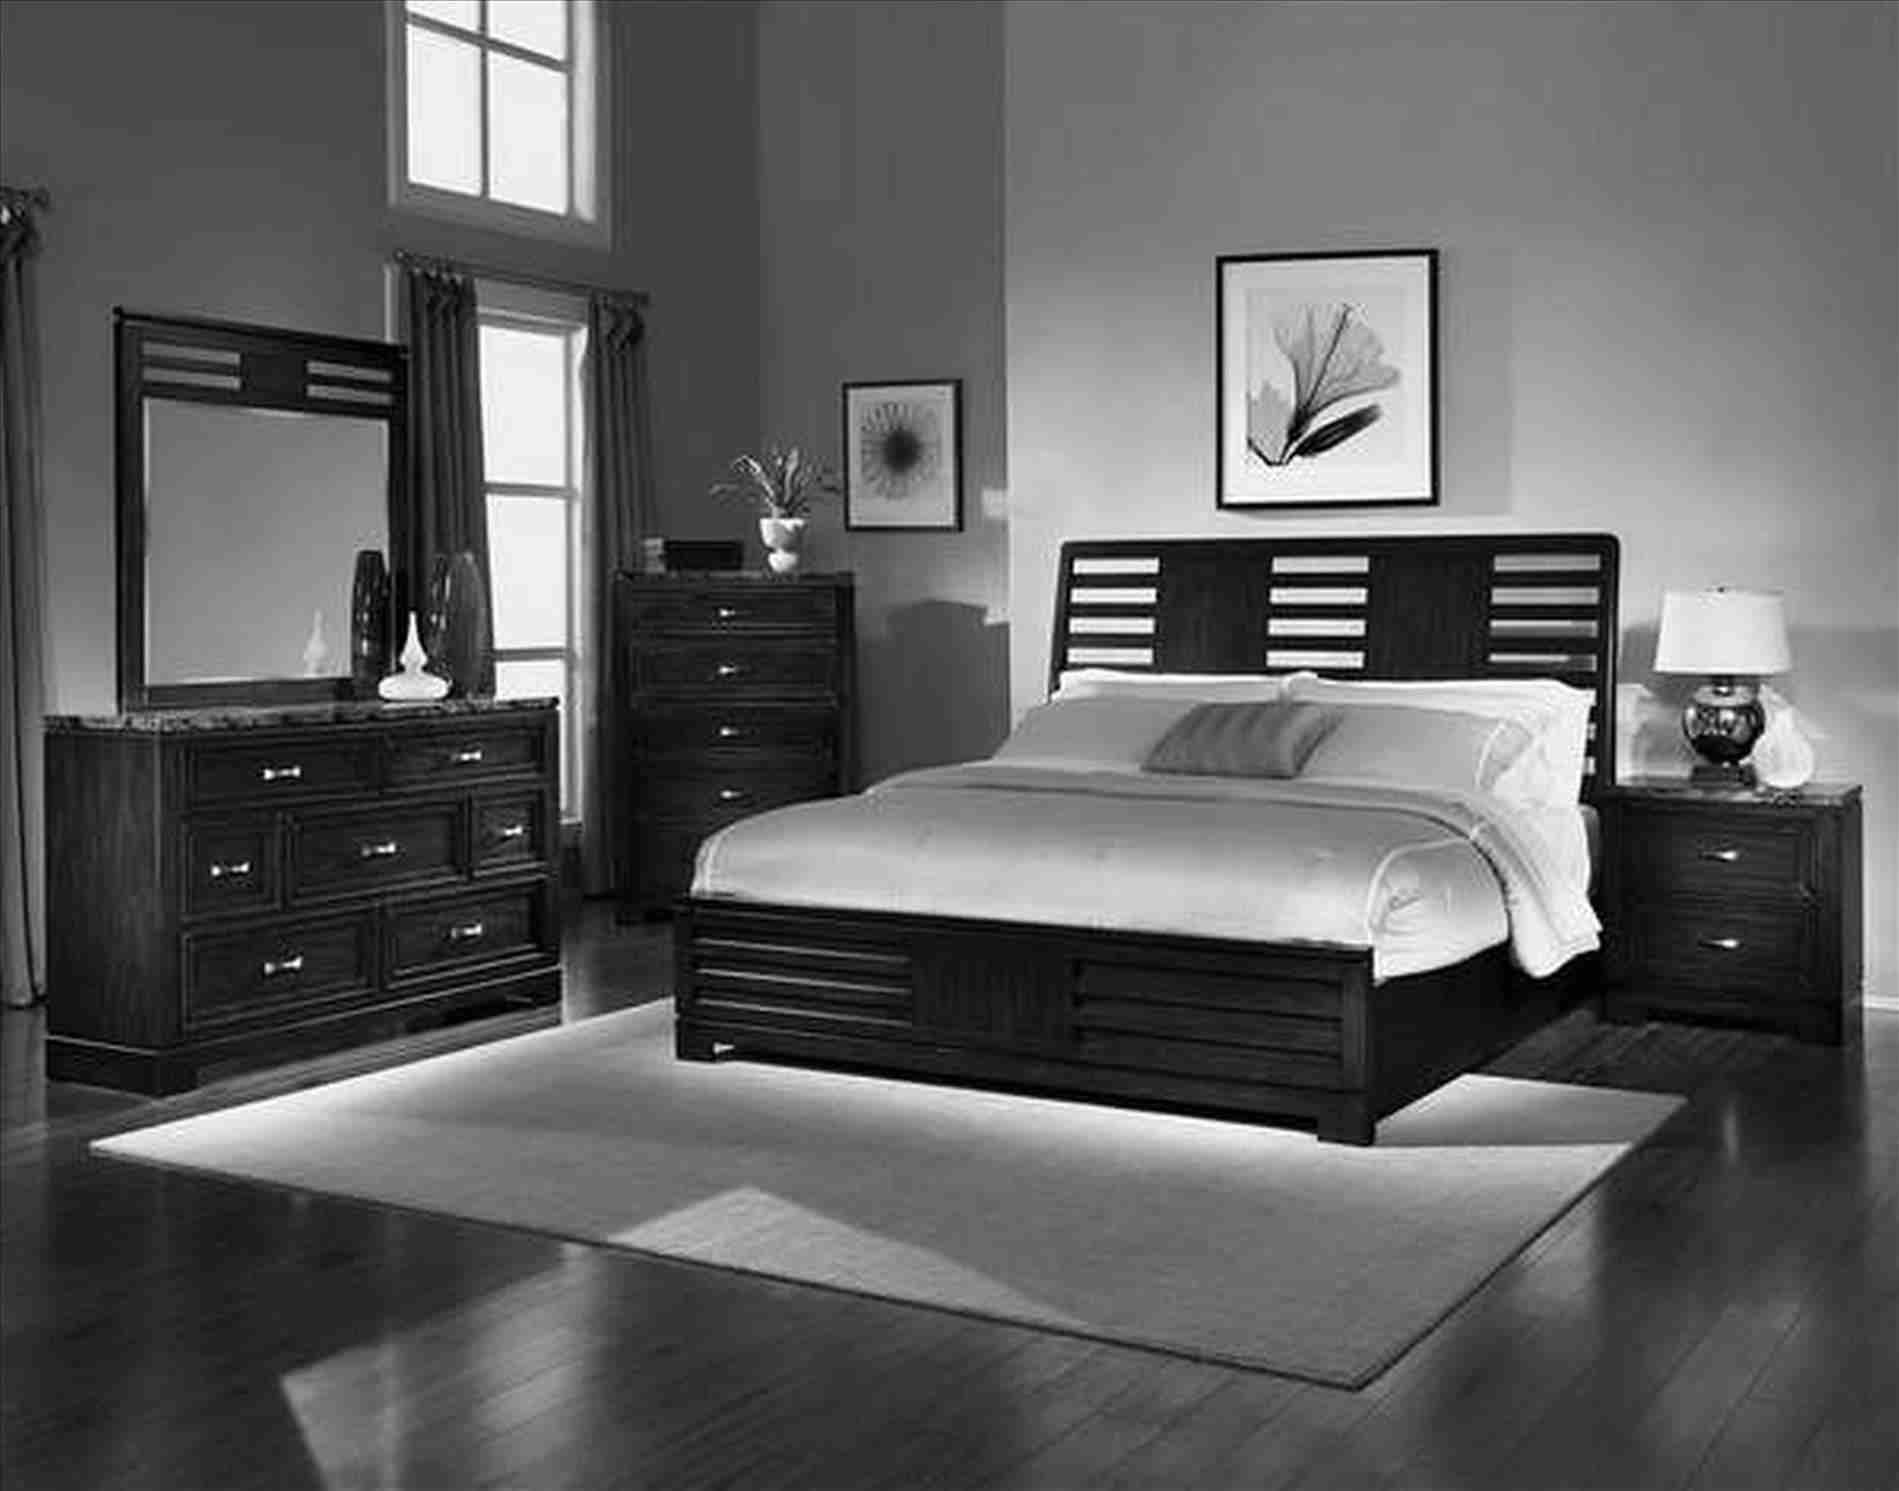 Black Furniture Bedroom Ideas Appealing Dark Purple And Black Bedroom Ideas White Wall Paint Ro Black Bedroom Furniture Black Living Room Bedroom Wall Colors